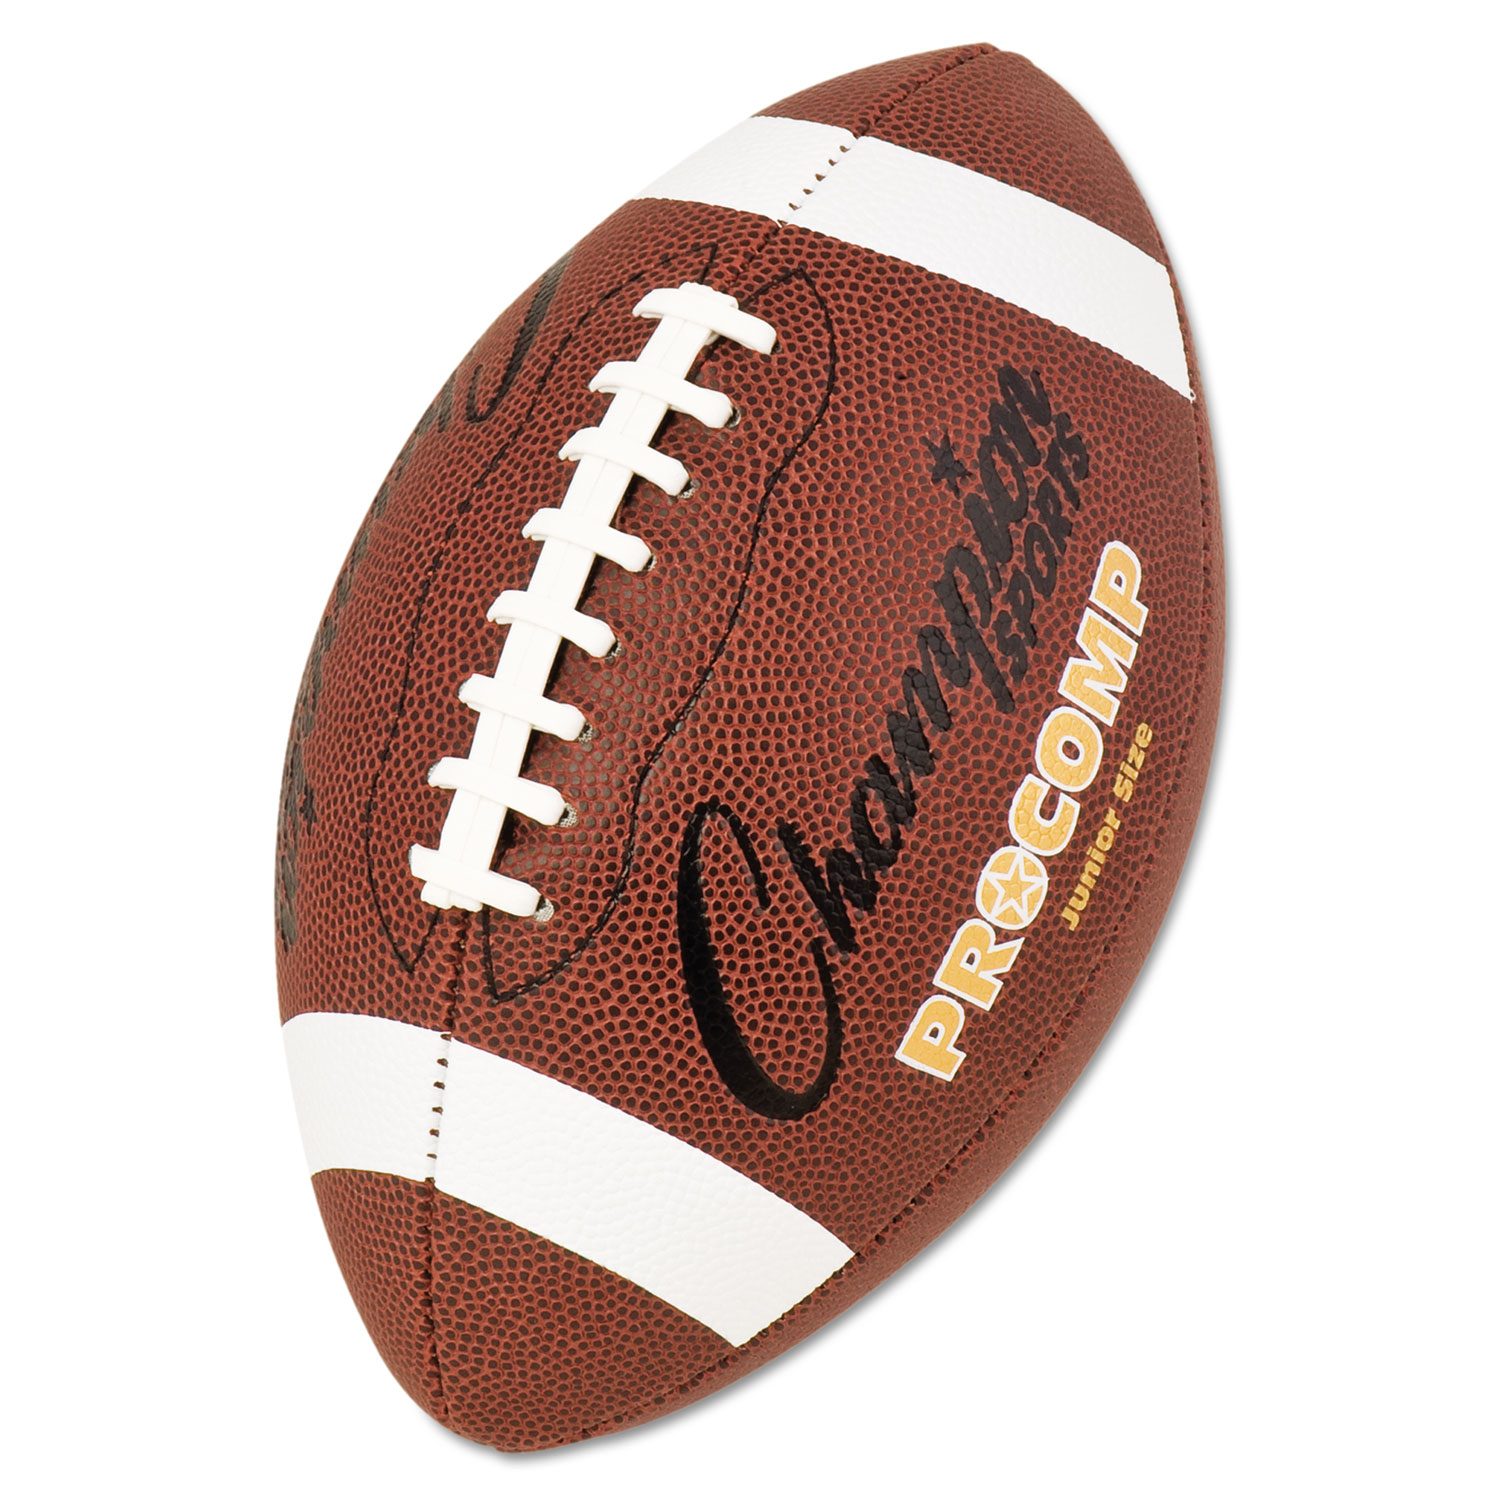 "Pro Composite Football, Junior Size, 20.75"""", Brown"